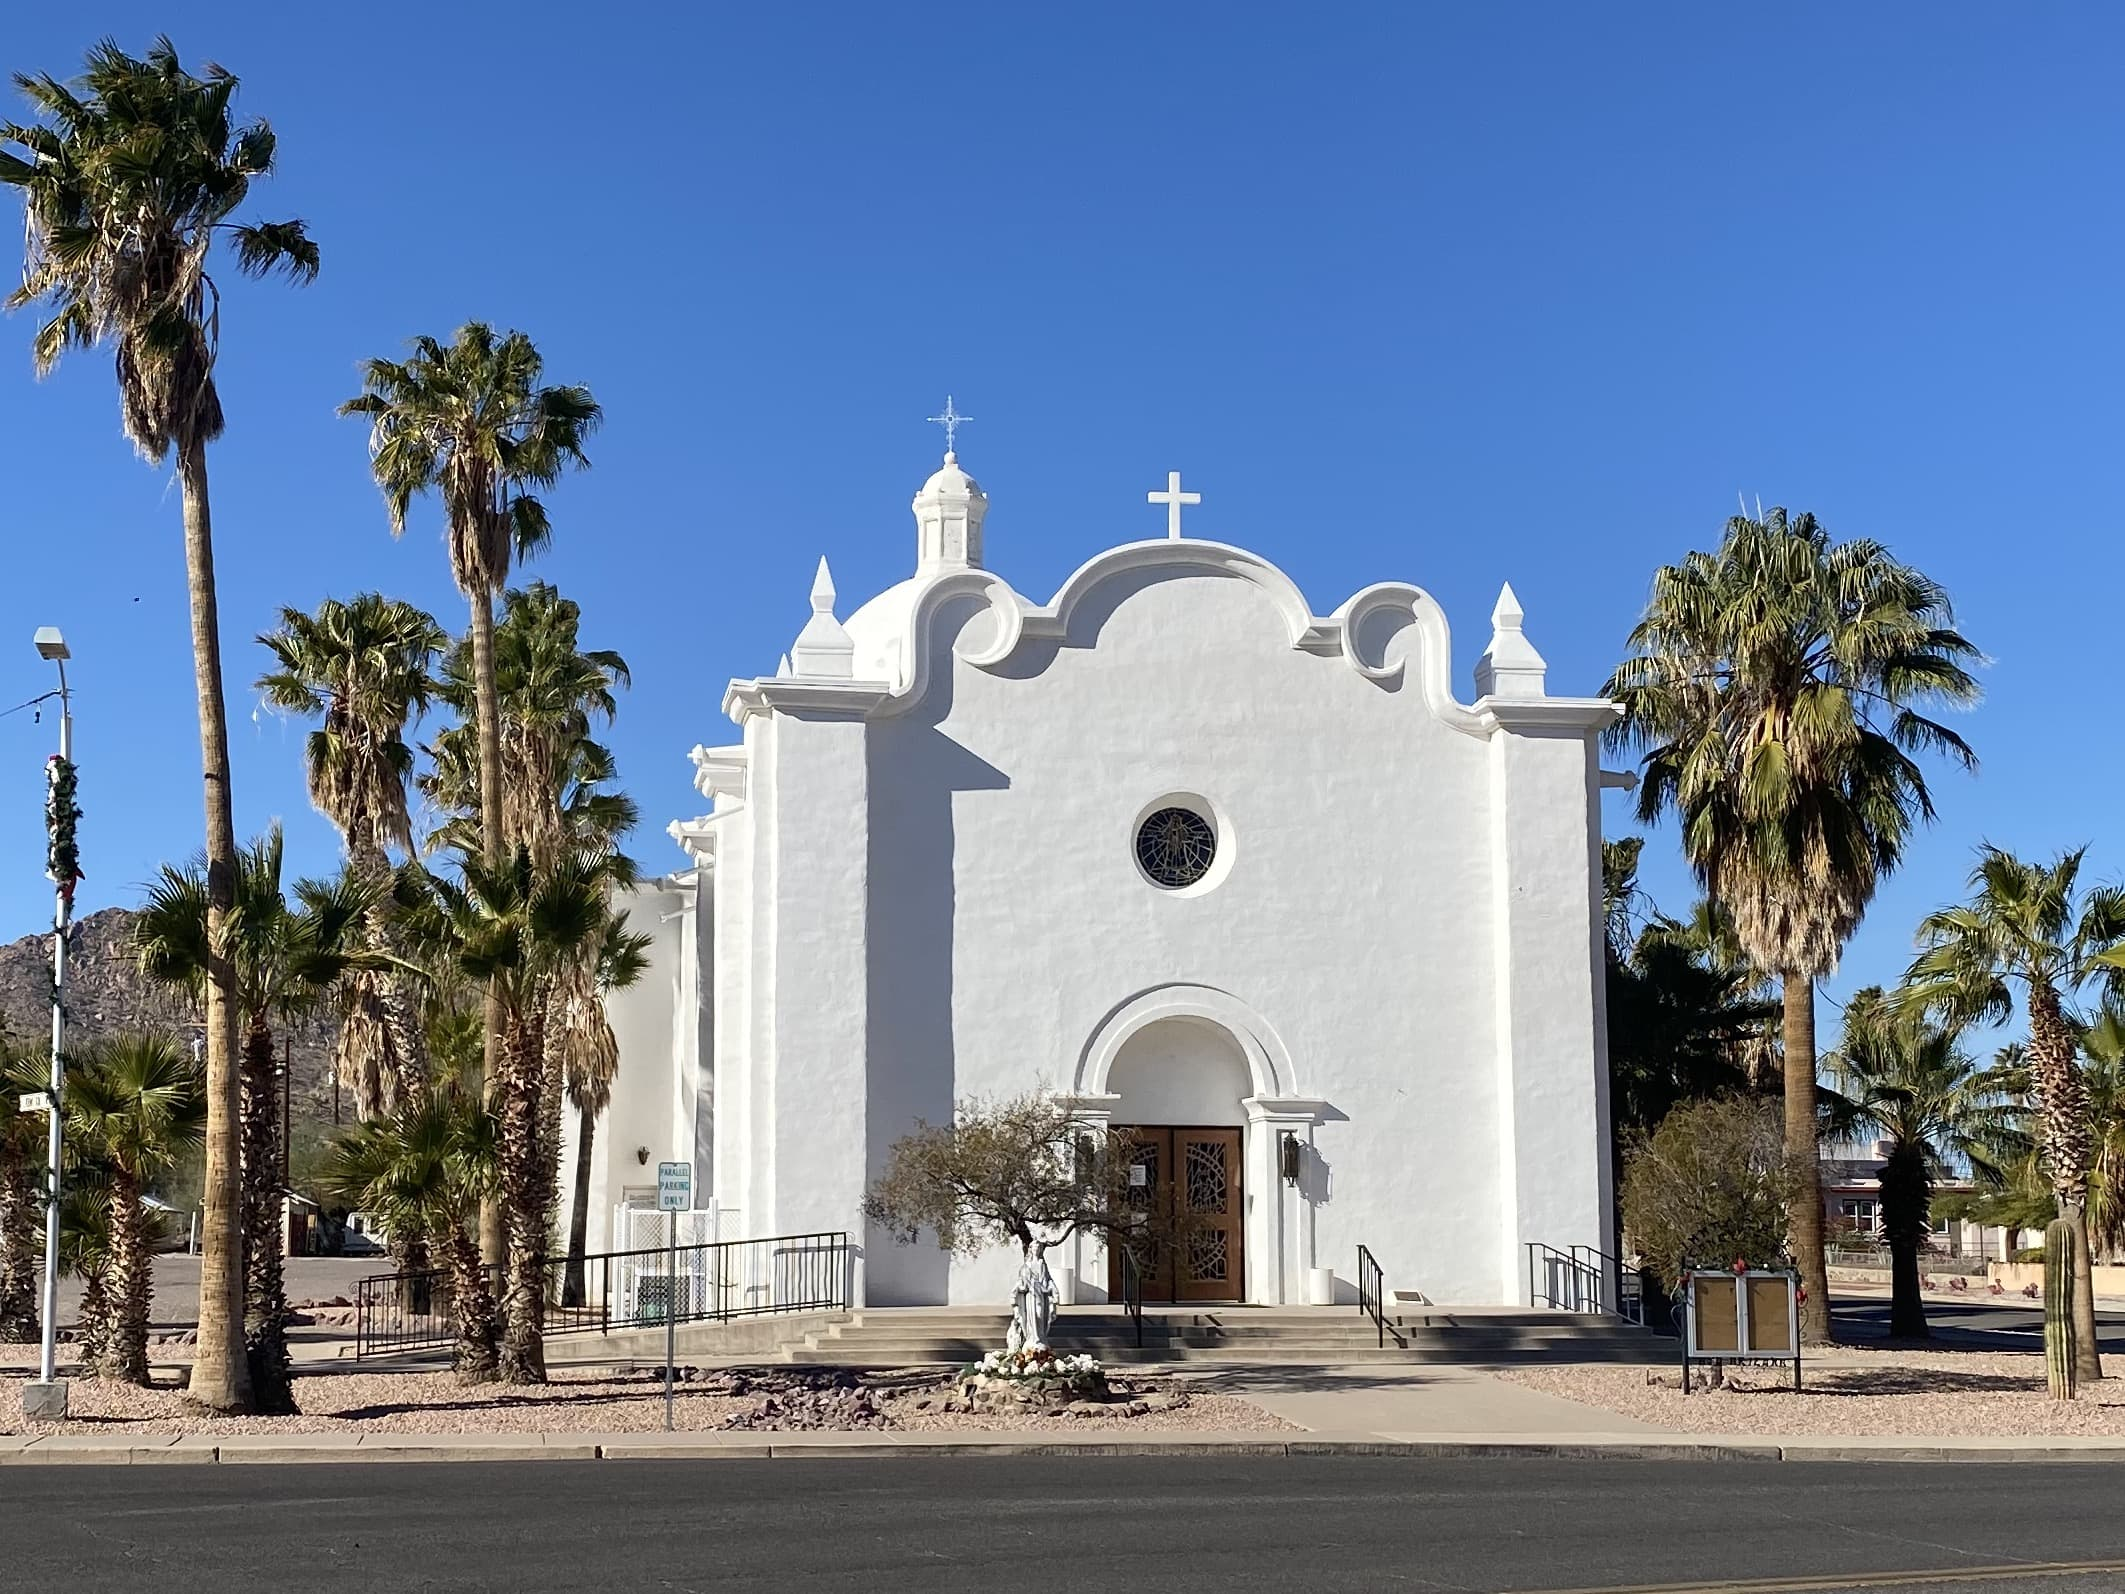 Historic white church across the street from the Ajo town plaza.